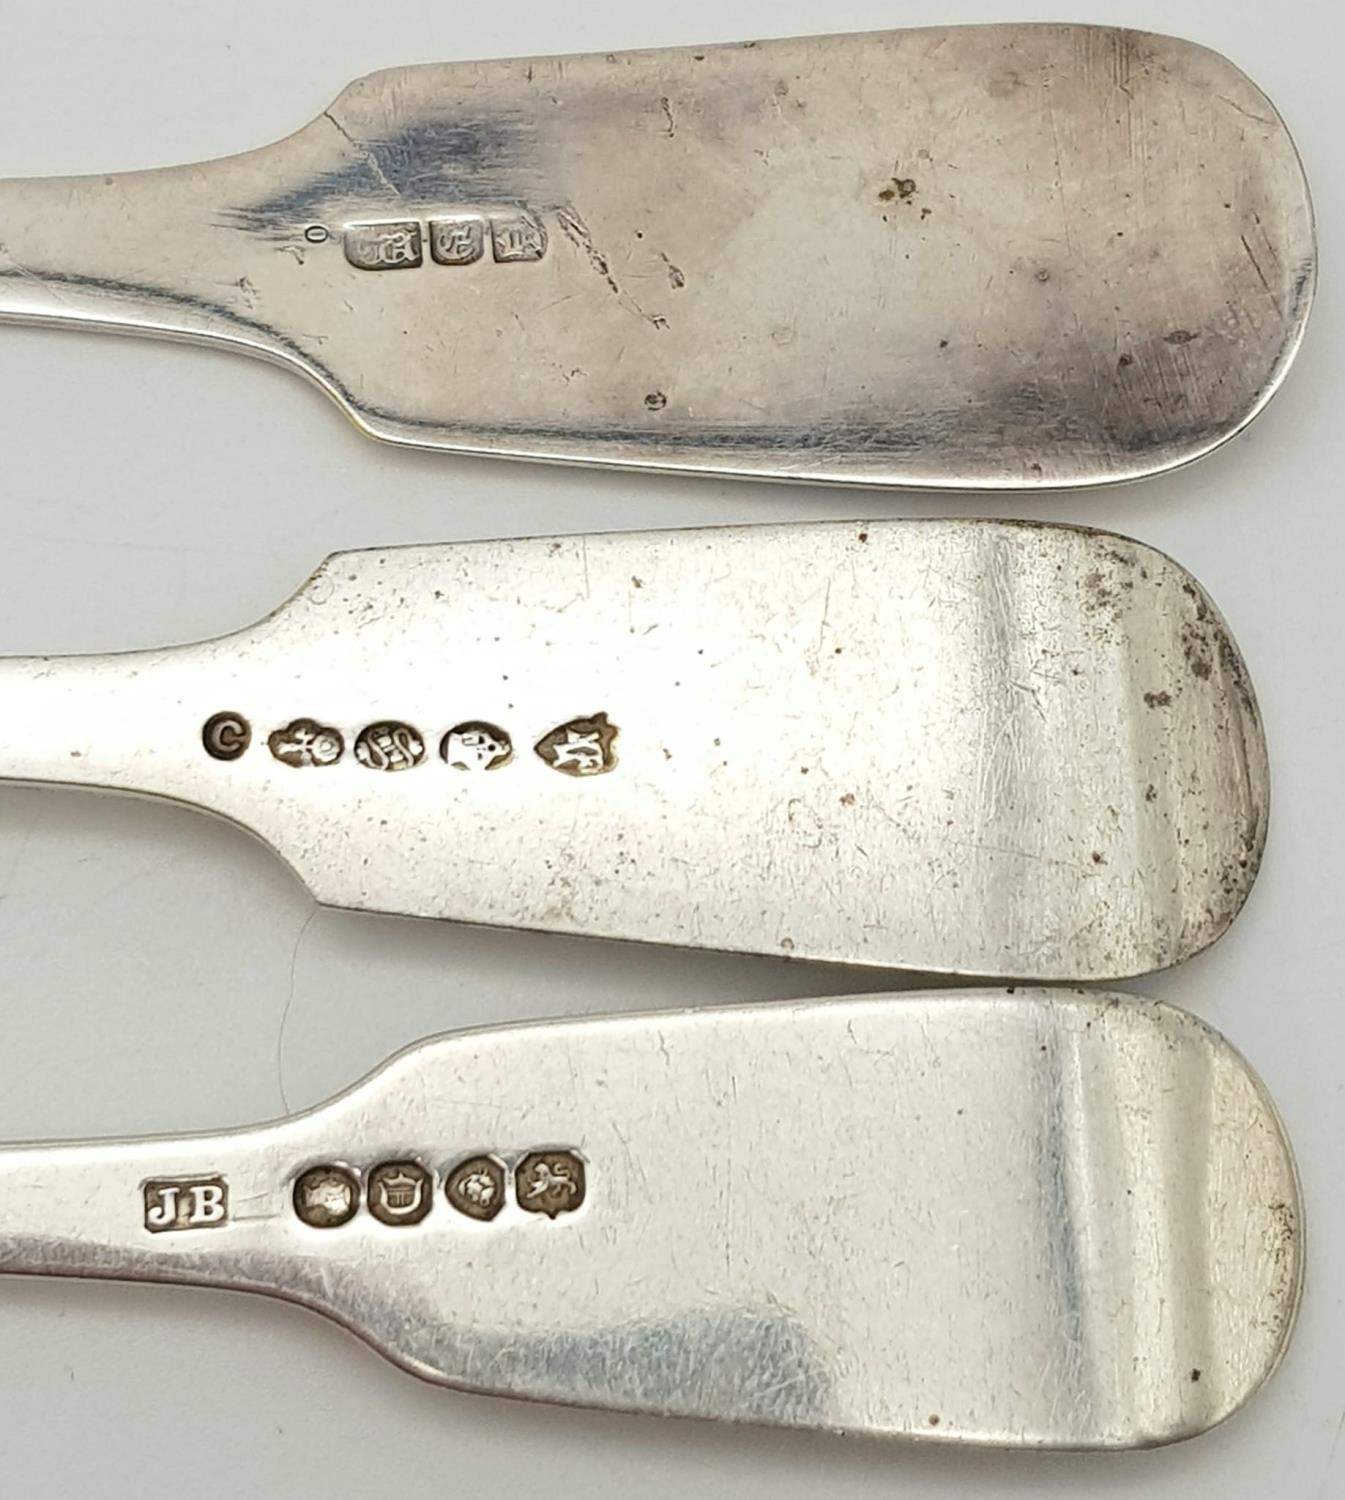 2x Victorian monogramed forks plus fish slide (3) Total weight 266.8g - Image 4 of 5